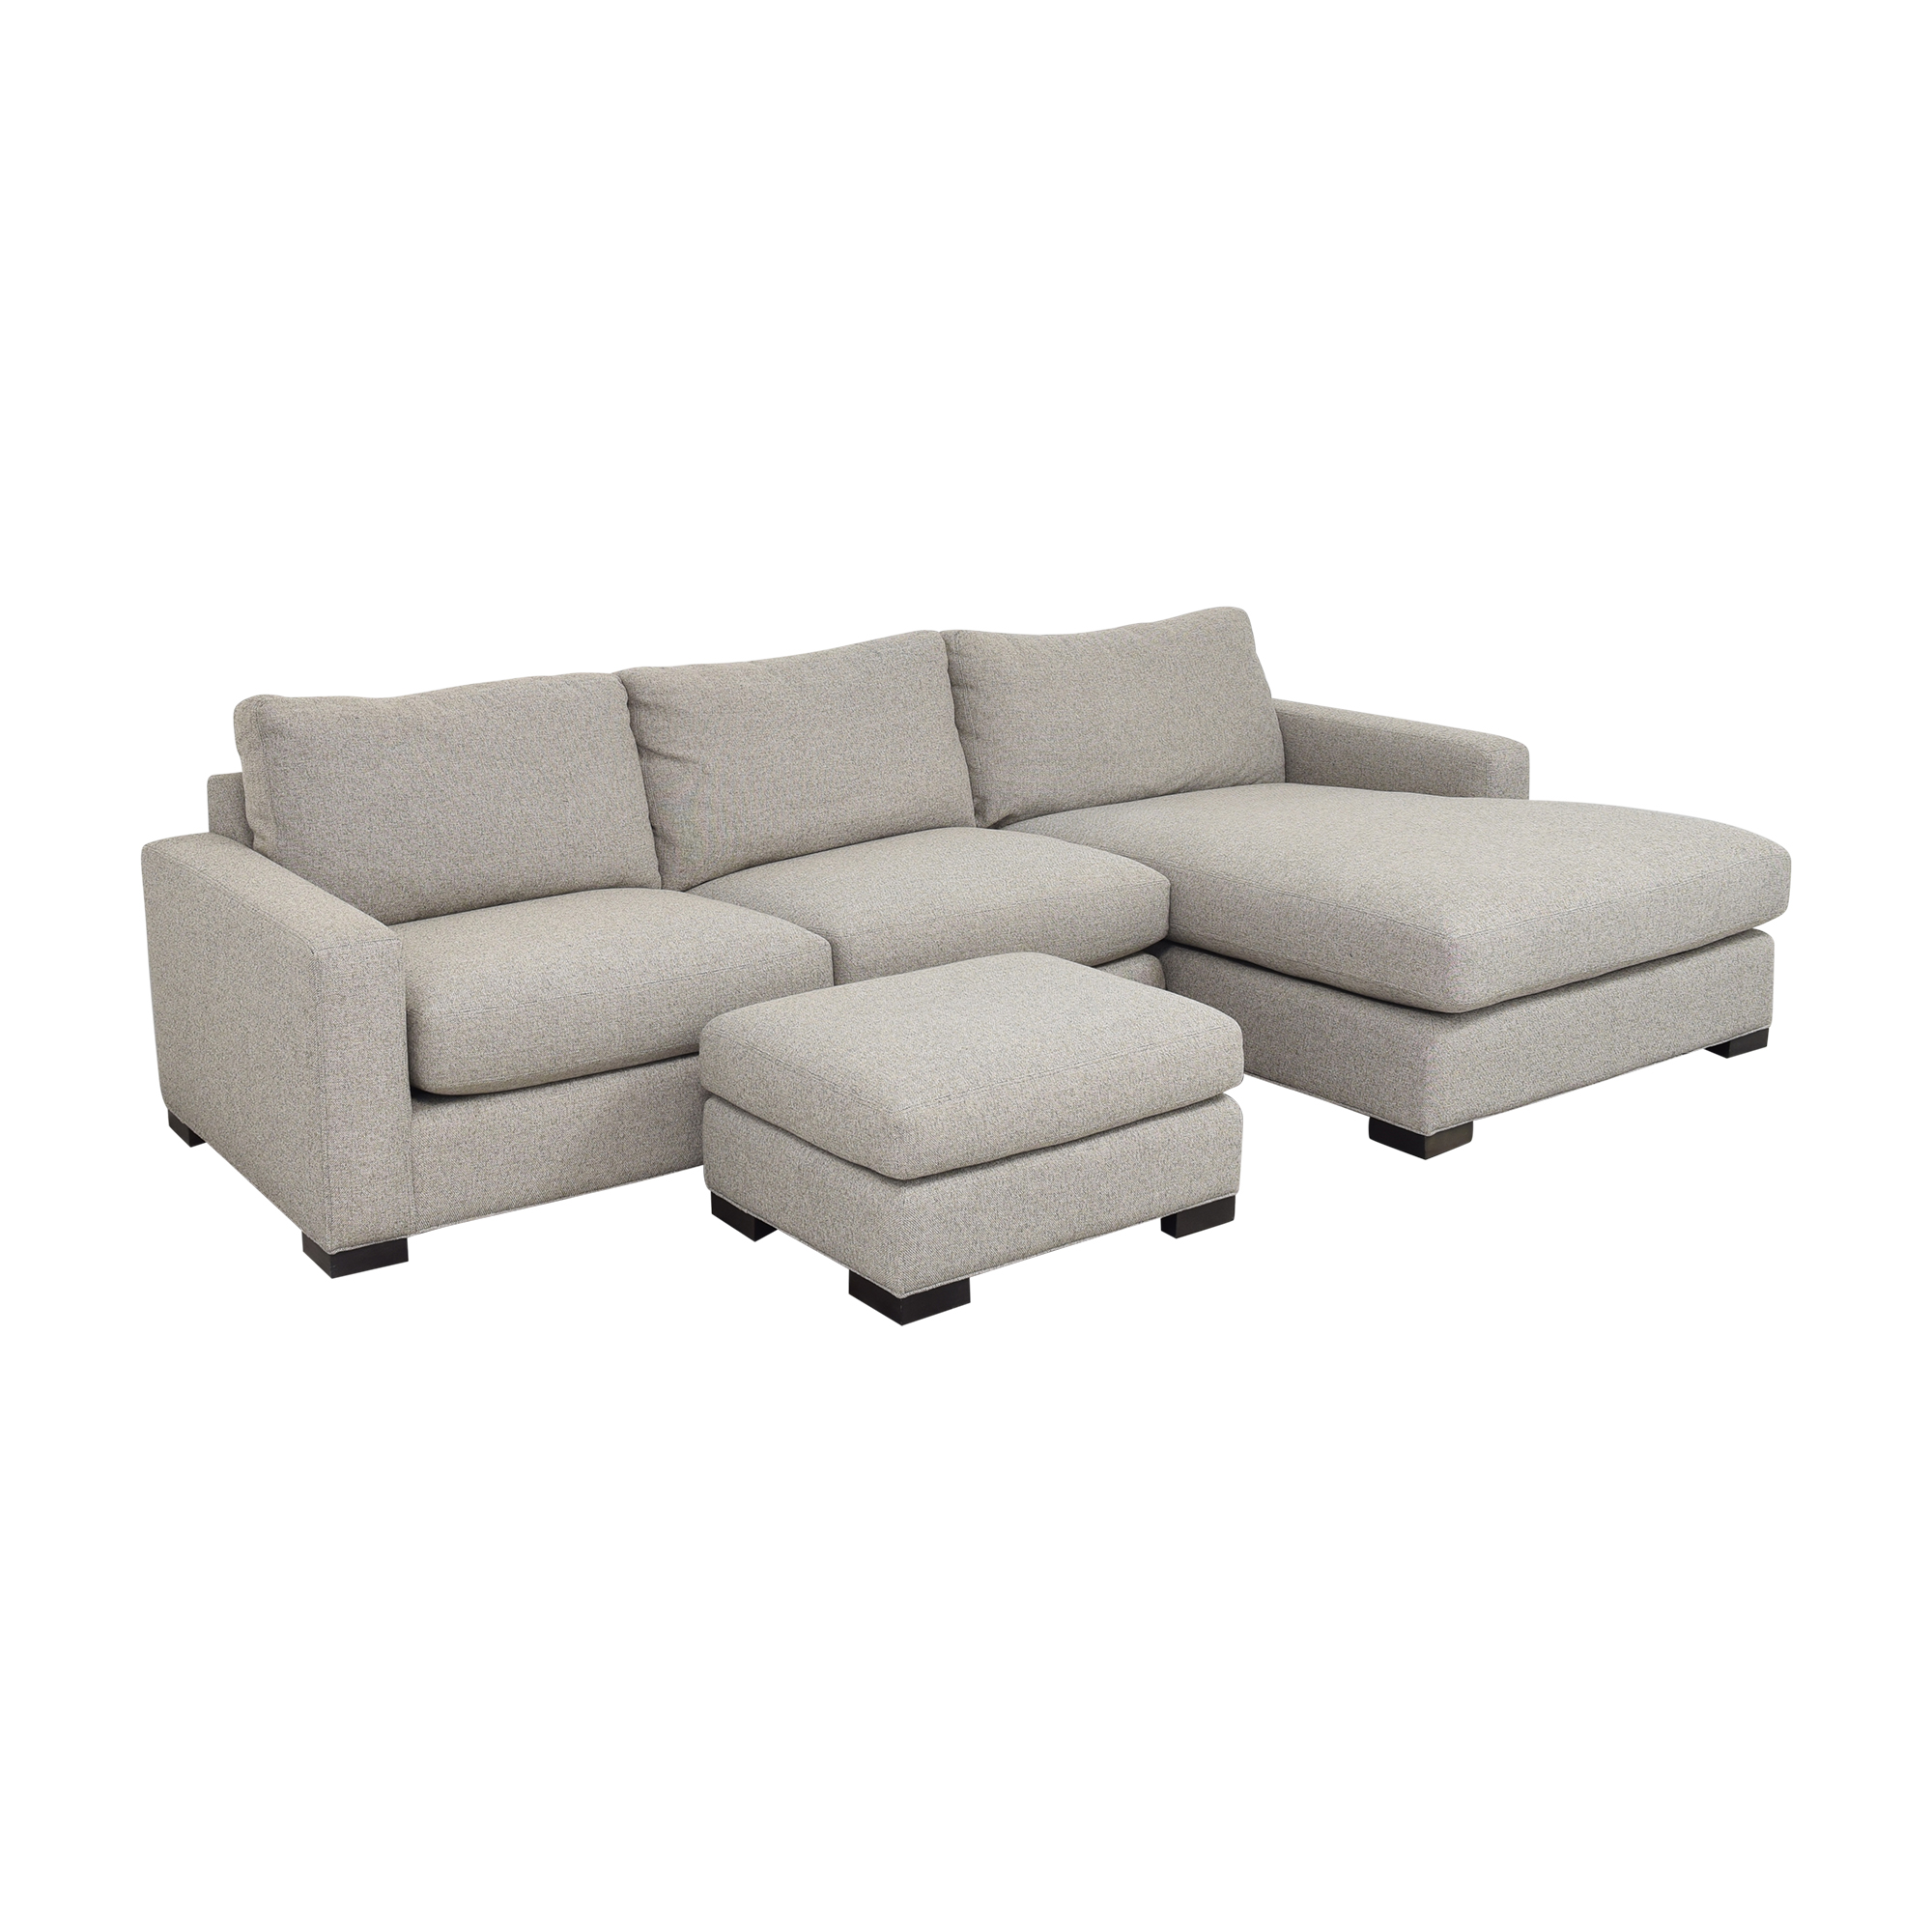 Room & Board Room & Board Metro Chaise Sectional Sofa and Ottoman Sectionals